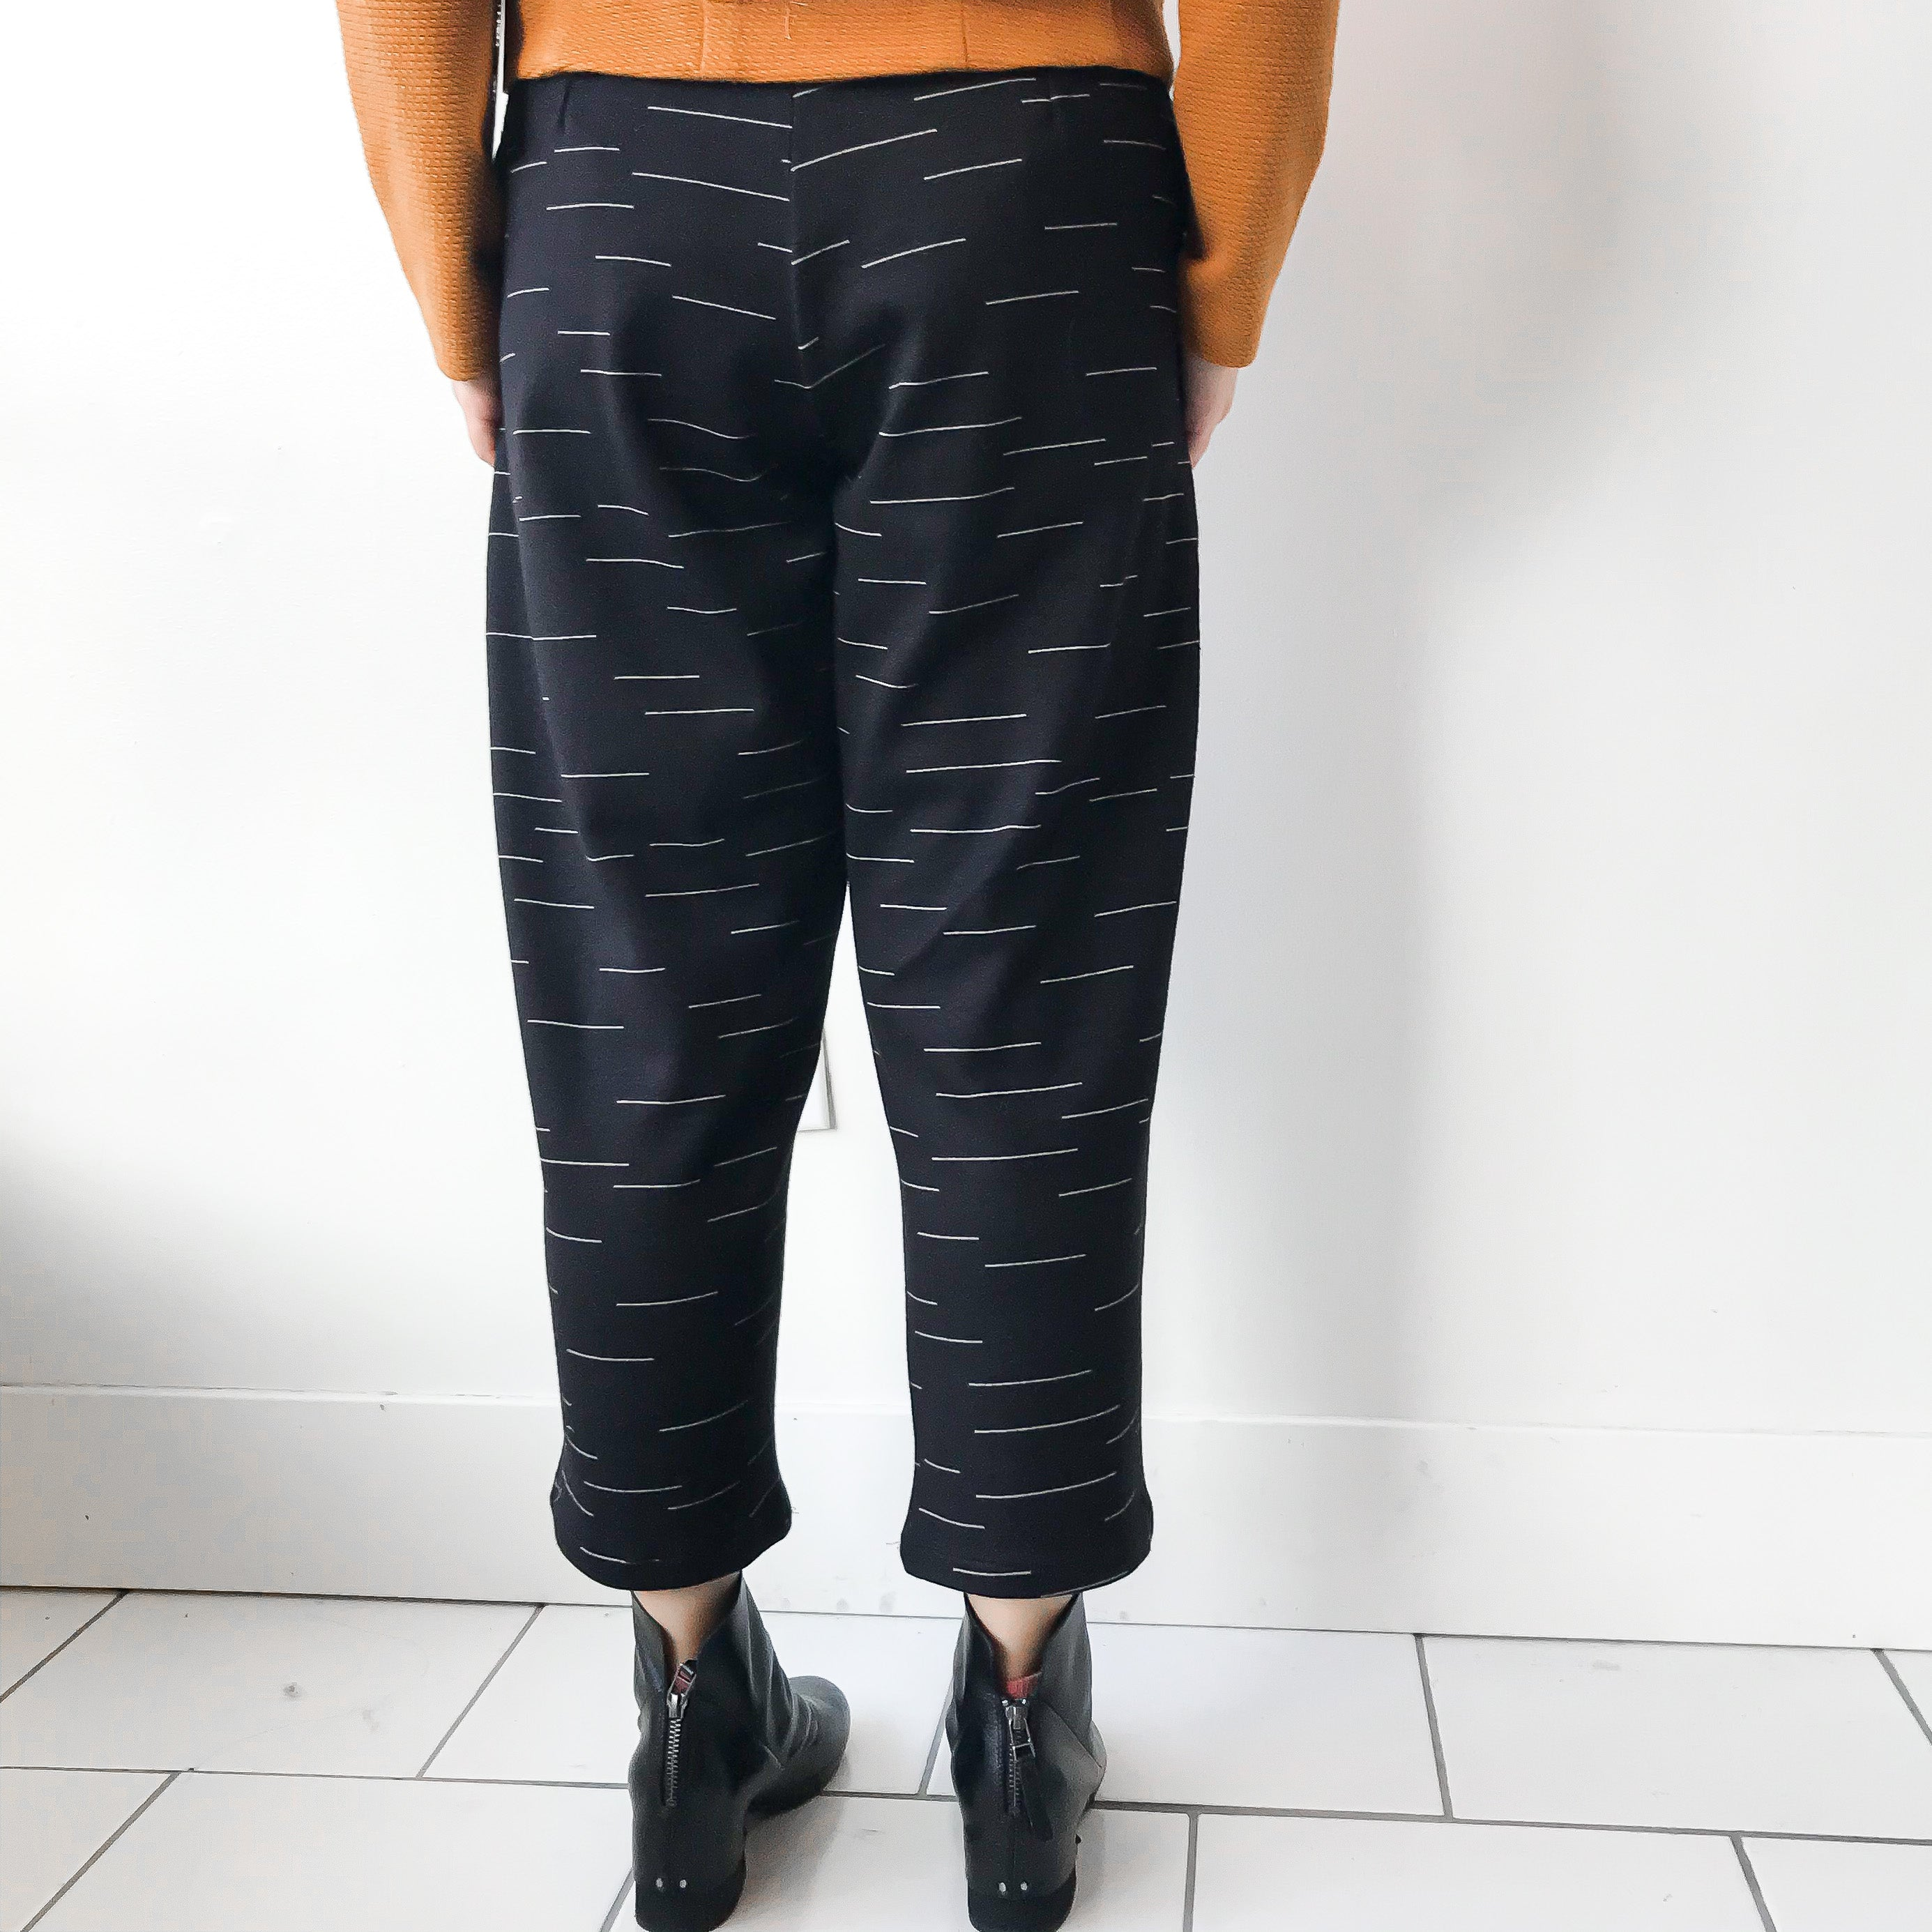 MELOW | BILBO High Waisted 3/4 Trousers - Black